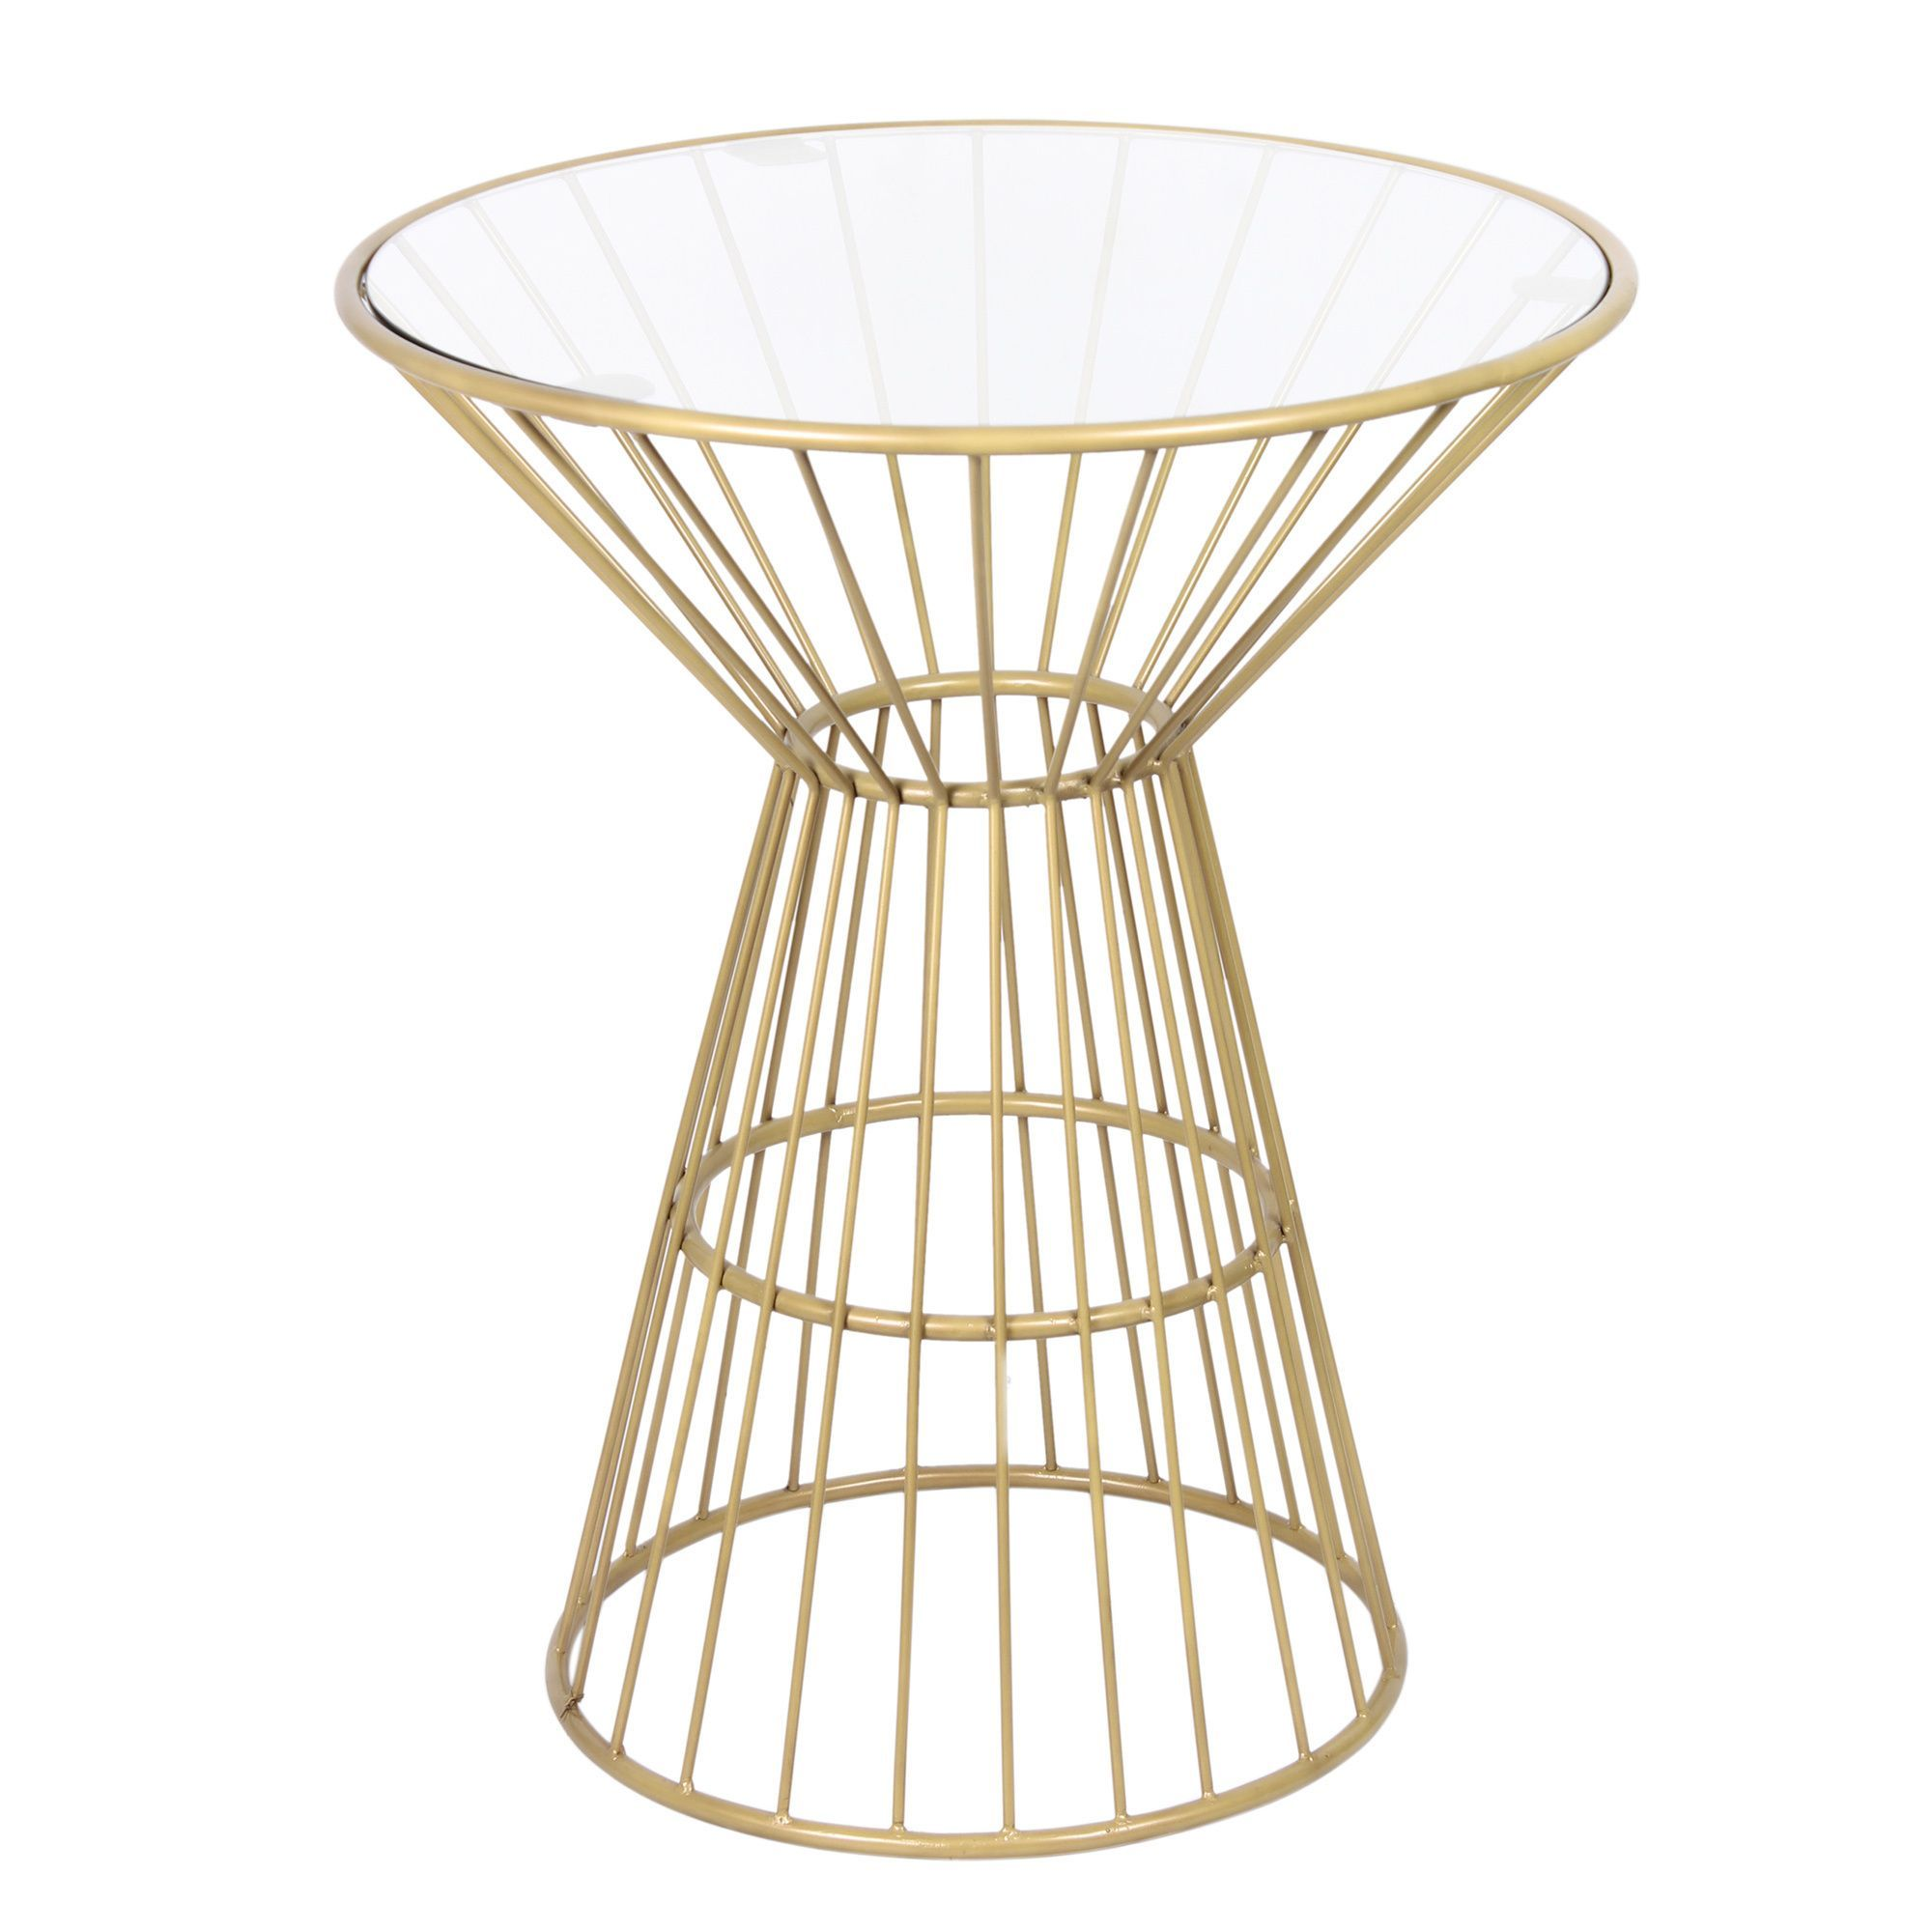 Gold Wire Framed Side Table with Glass Top - Overstock Shopping ...